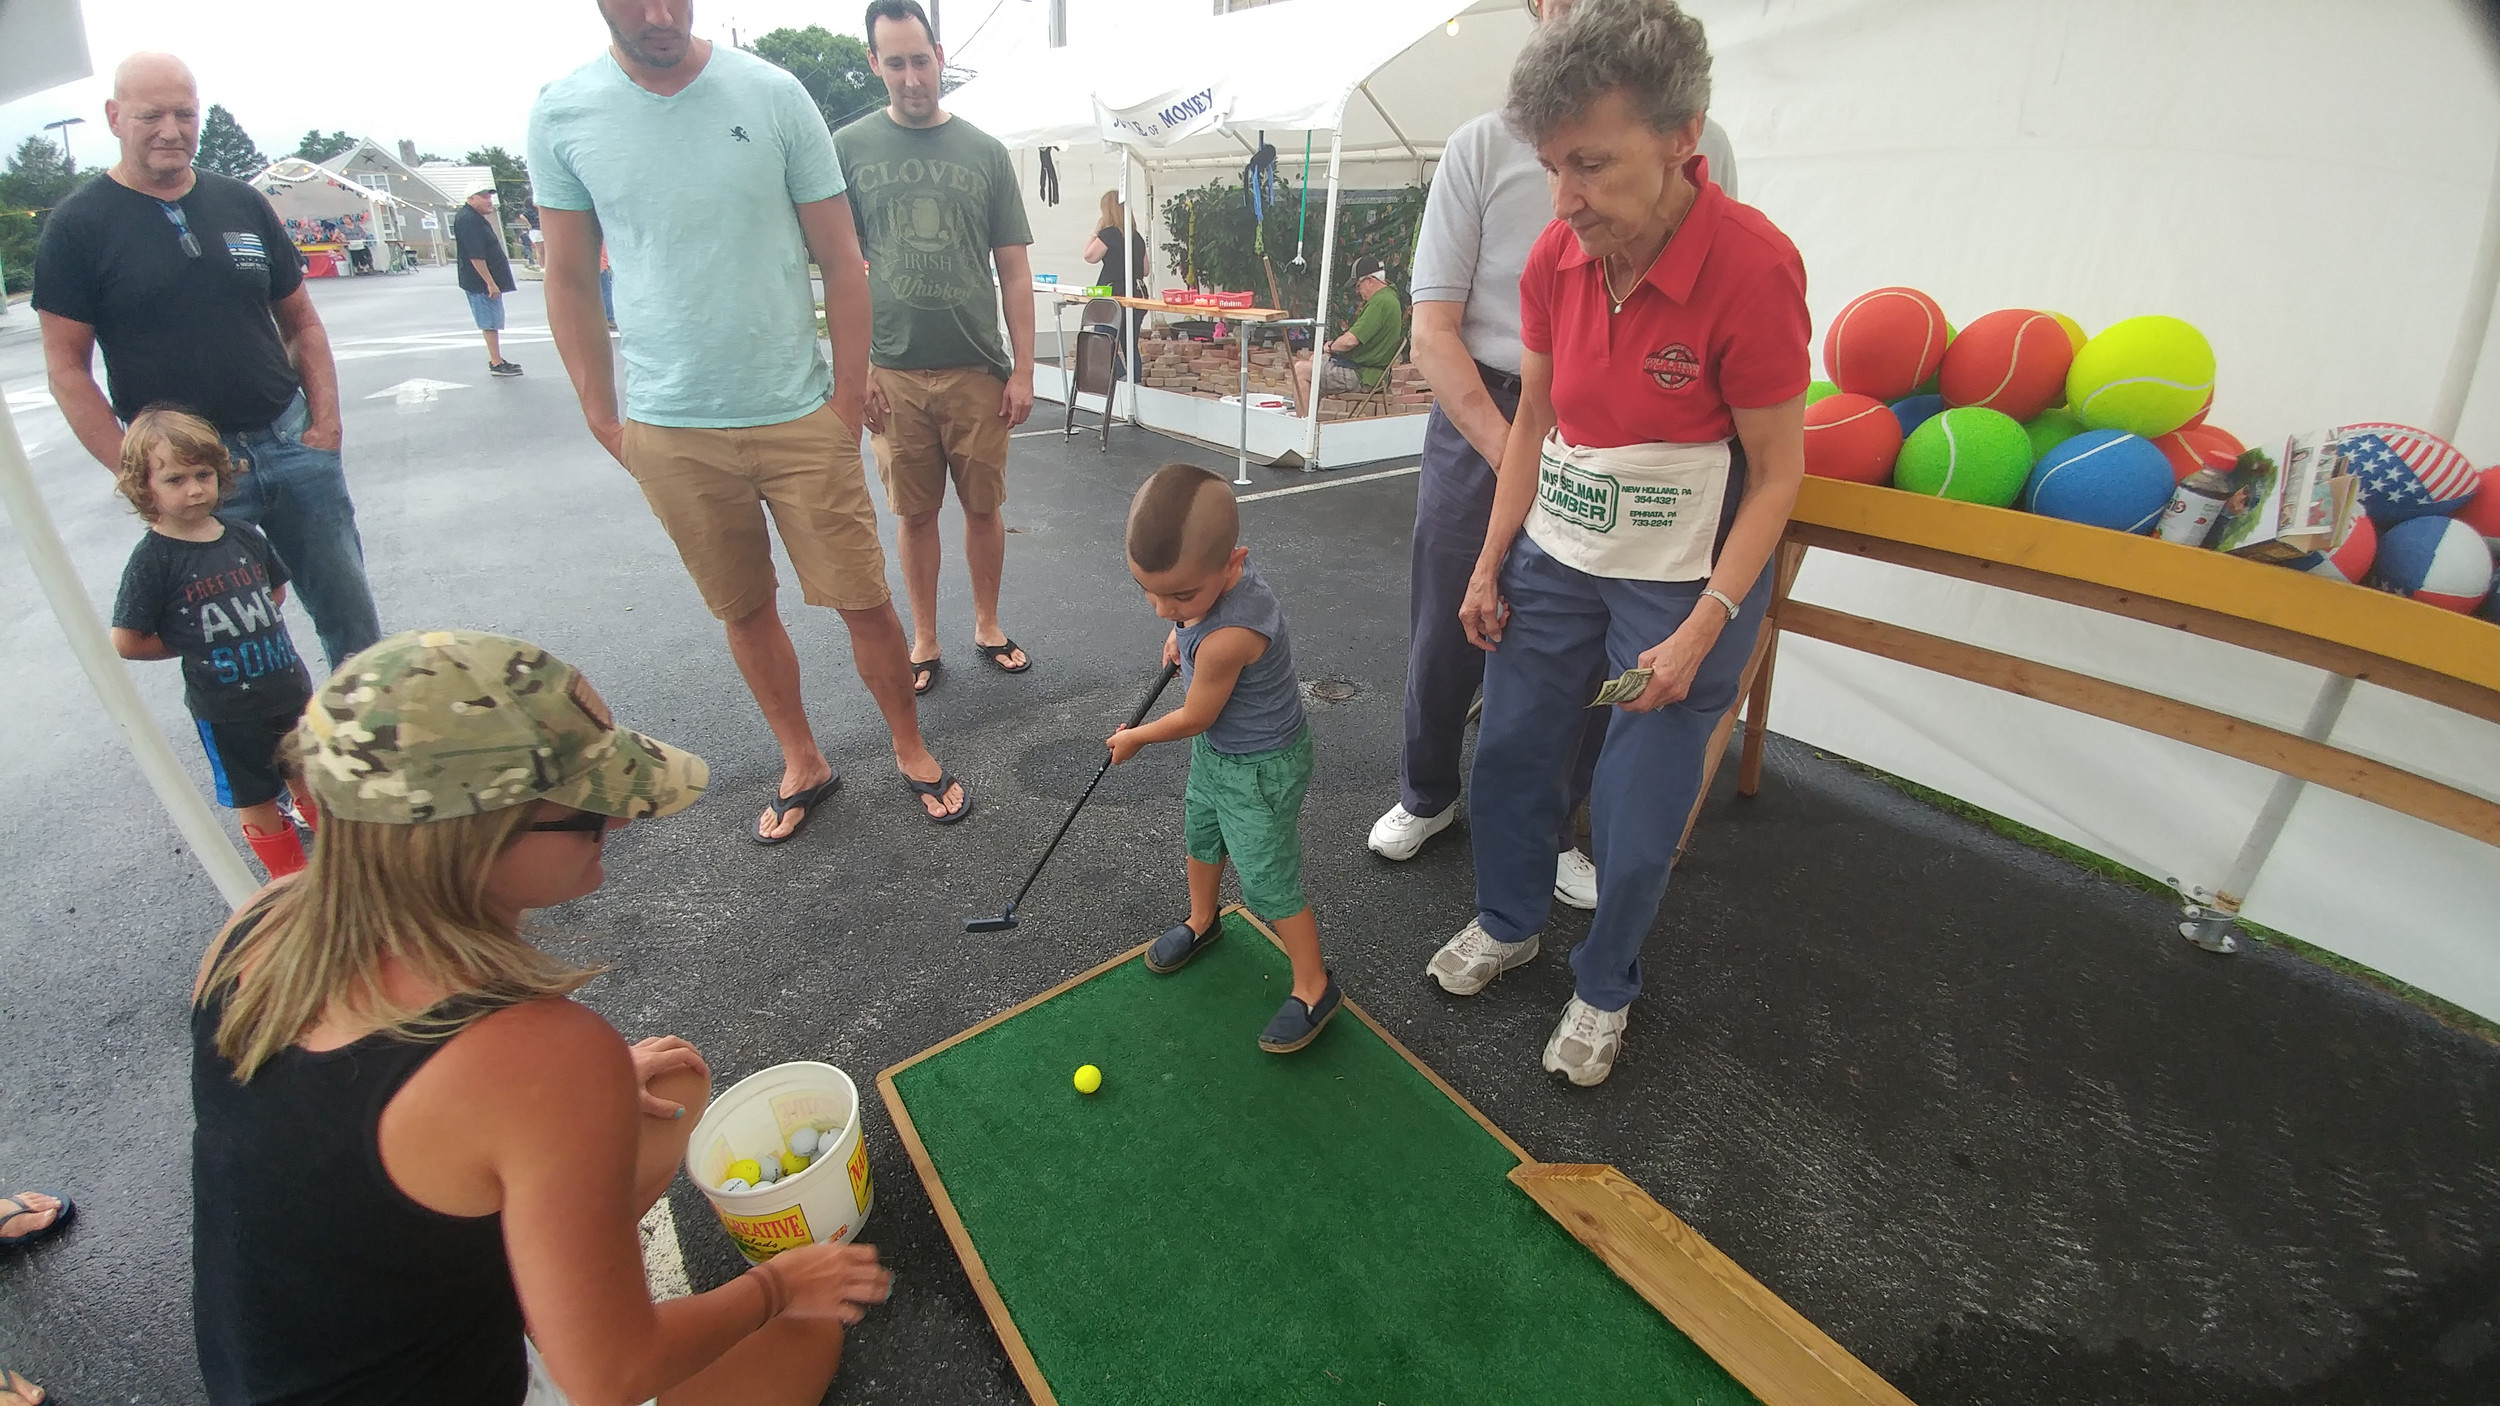 Jackson Cain, 3, tries to get a hole in one to win a prize during the festival Thursday night.